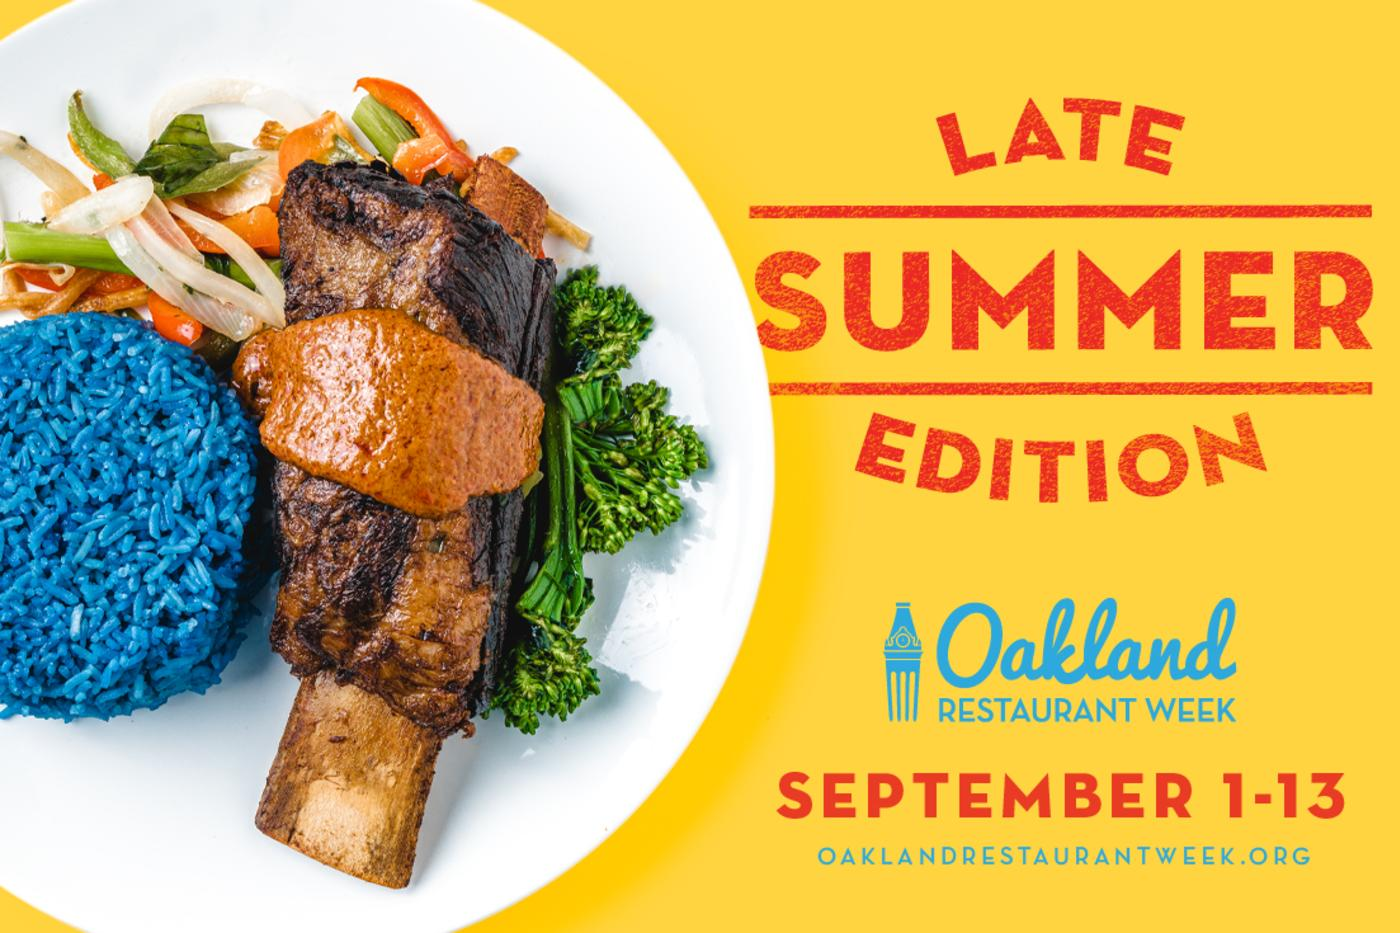 Oakland Restaurant Week Late Summer Edition banner with dates